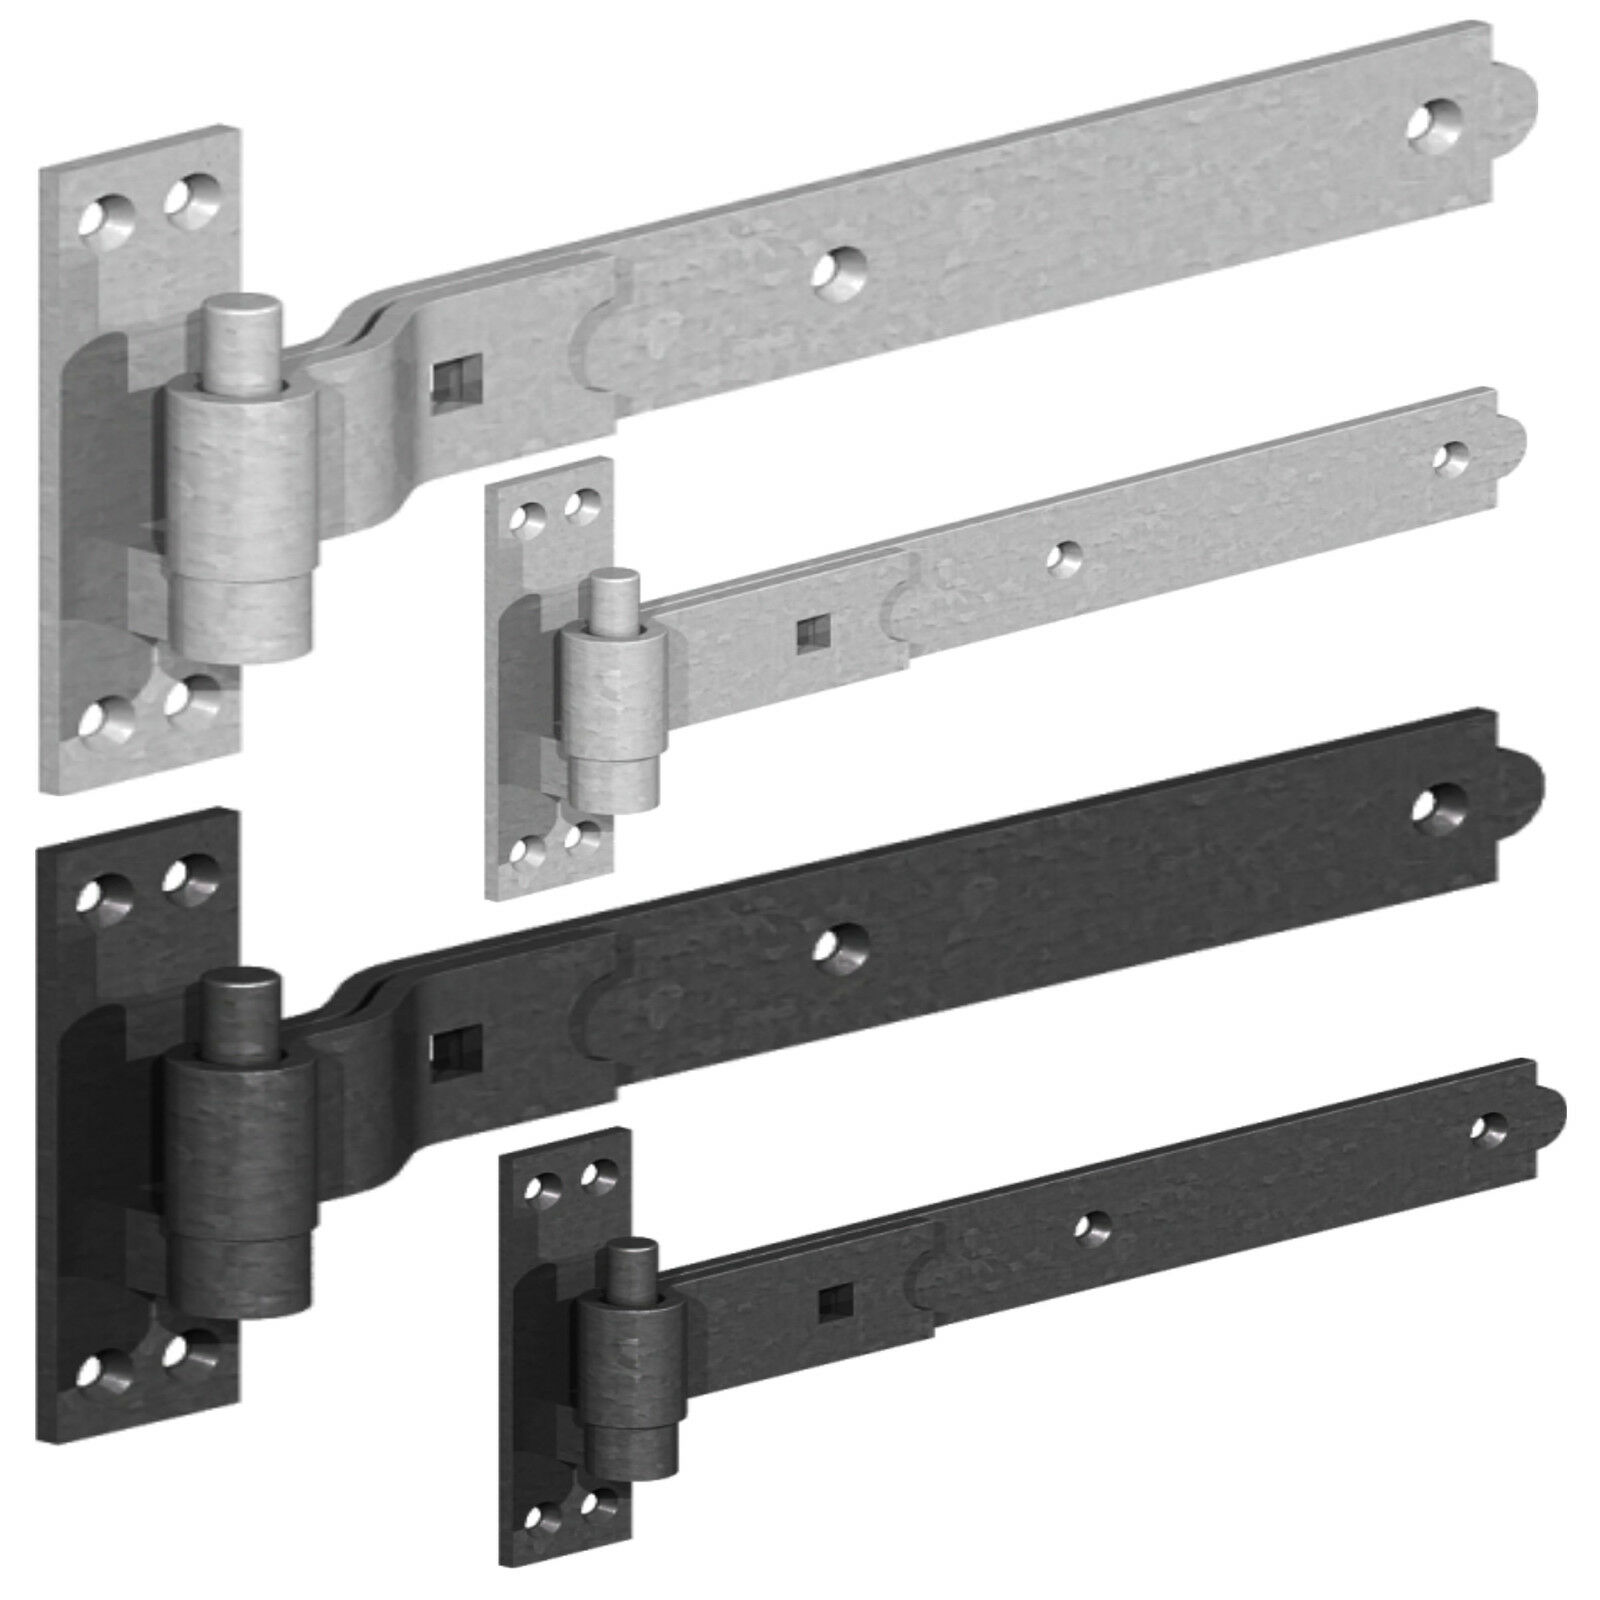 Heavy duty hook and band gate shed stable door hinges for Door to gate kontakt